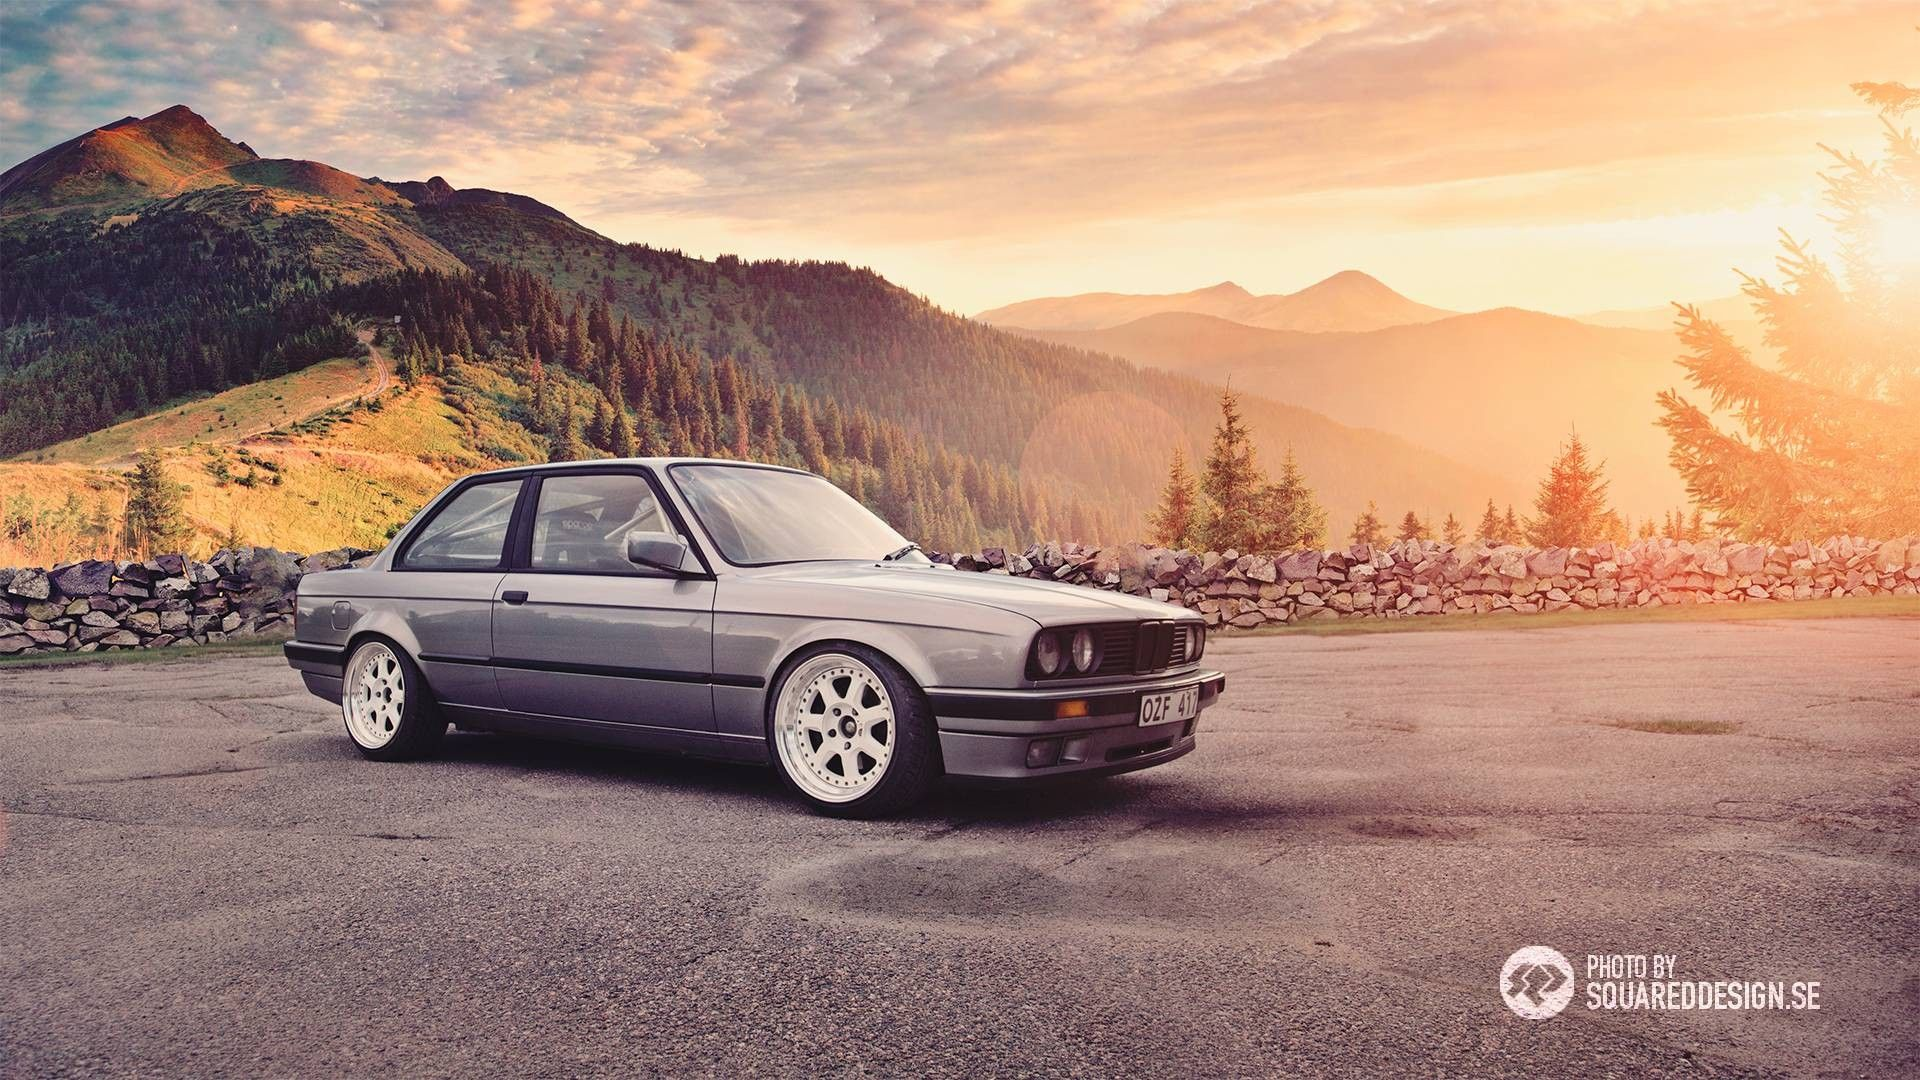 Bmw E30 Wallpaper Hd Wallpapersafari